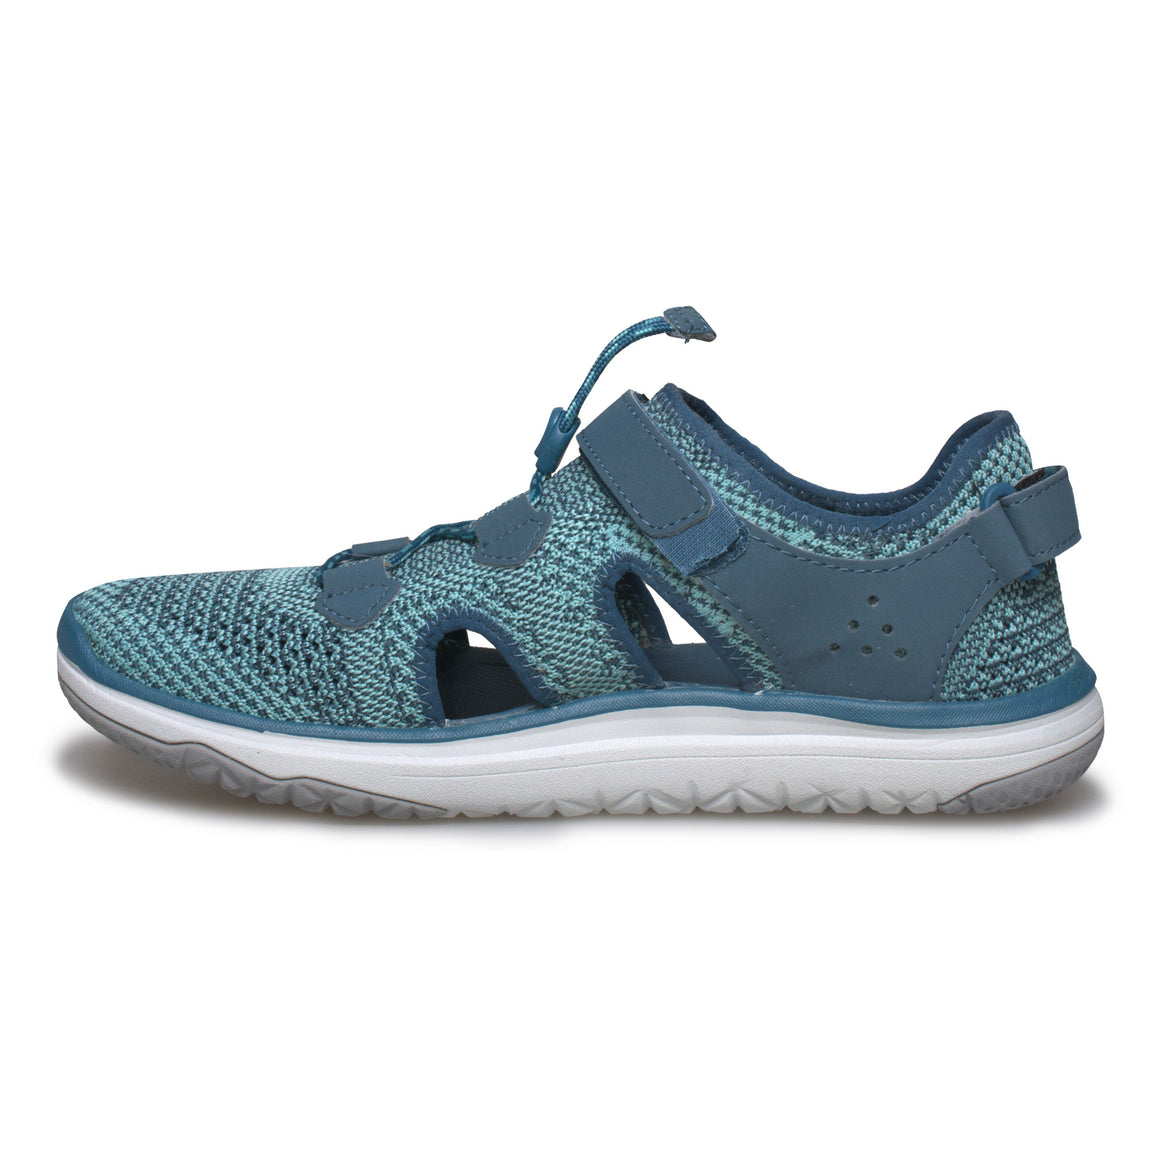 Teva Terra Float Travel Knit Legion Blue Shoes - Women's